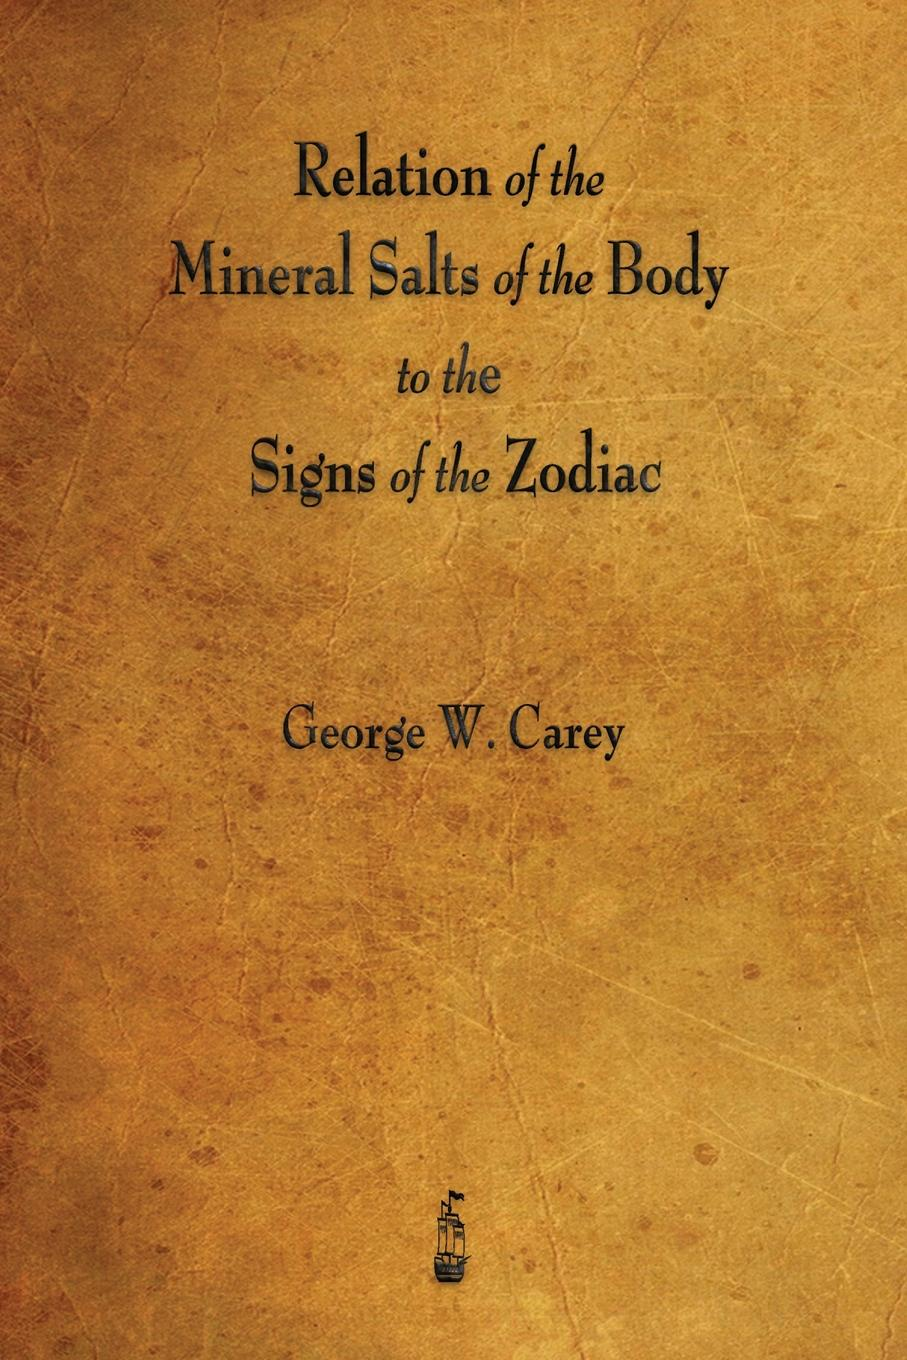 George W. Carey Relation of the Mineral Salts of the Body to the Signs of the Zodiac цена